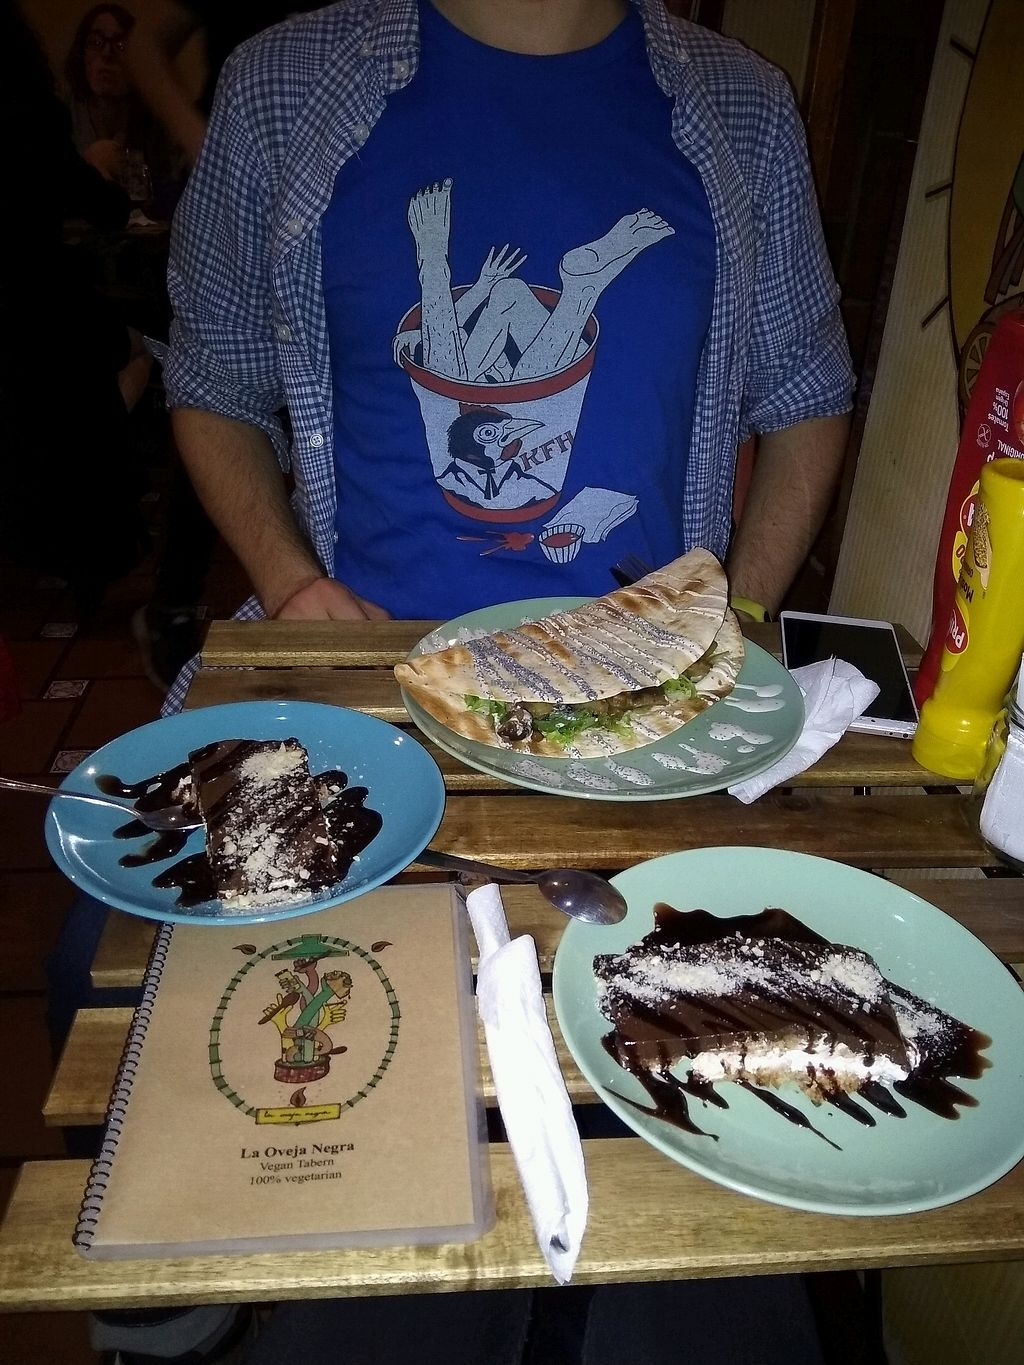 """Photo of La Oveja Negra  by <a href=""""/members/profile/MarsiaMS"""">MarsiaMS</a> <br/>Cake and a main dish <br/> April 10, 2018  - <a href='/contact/abuse/image/32567/383532'>Report</a>"""